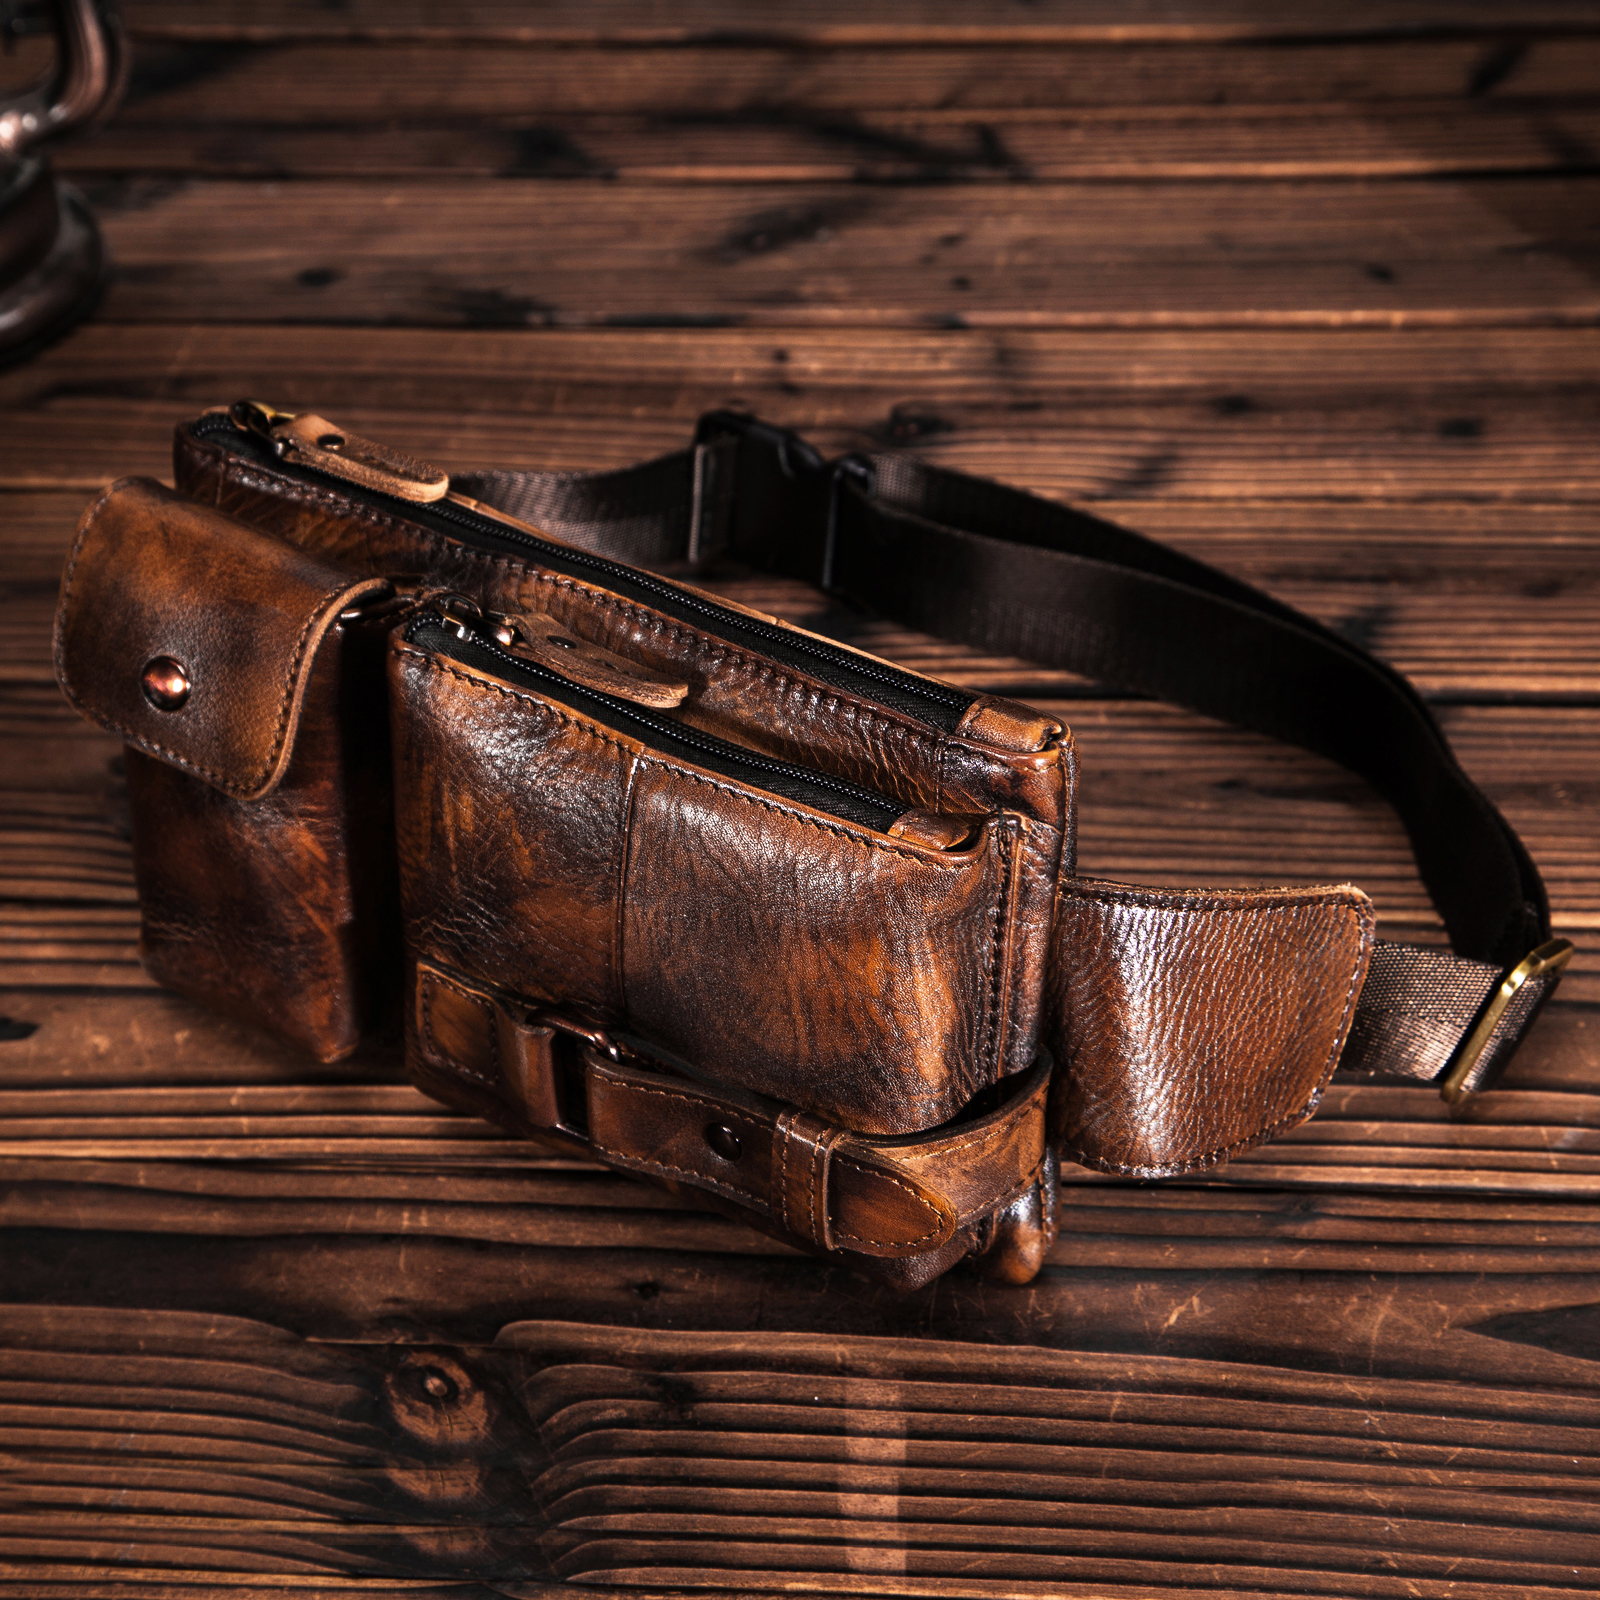 Original Leather Men Casual Fashion Travel Fanny Waist Belt Bag Chest Pack Sling Bag Design Bum Phone Case Pouch Male 8135-G